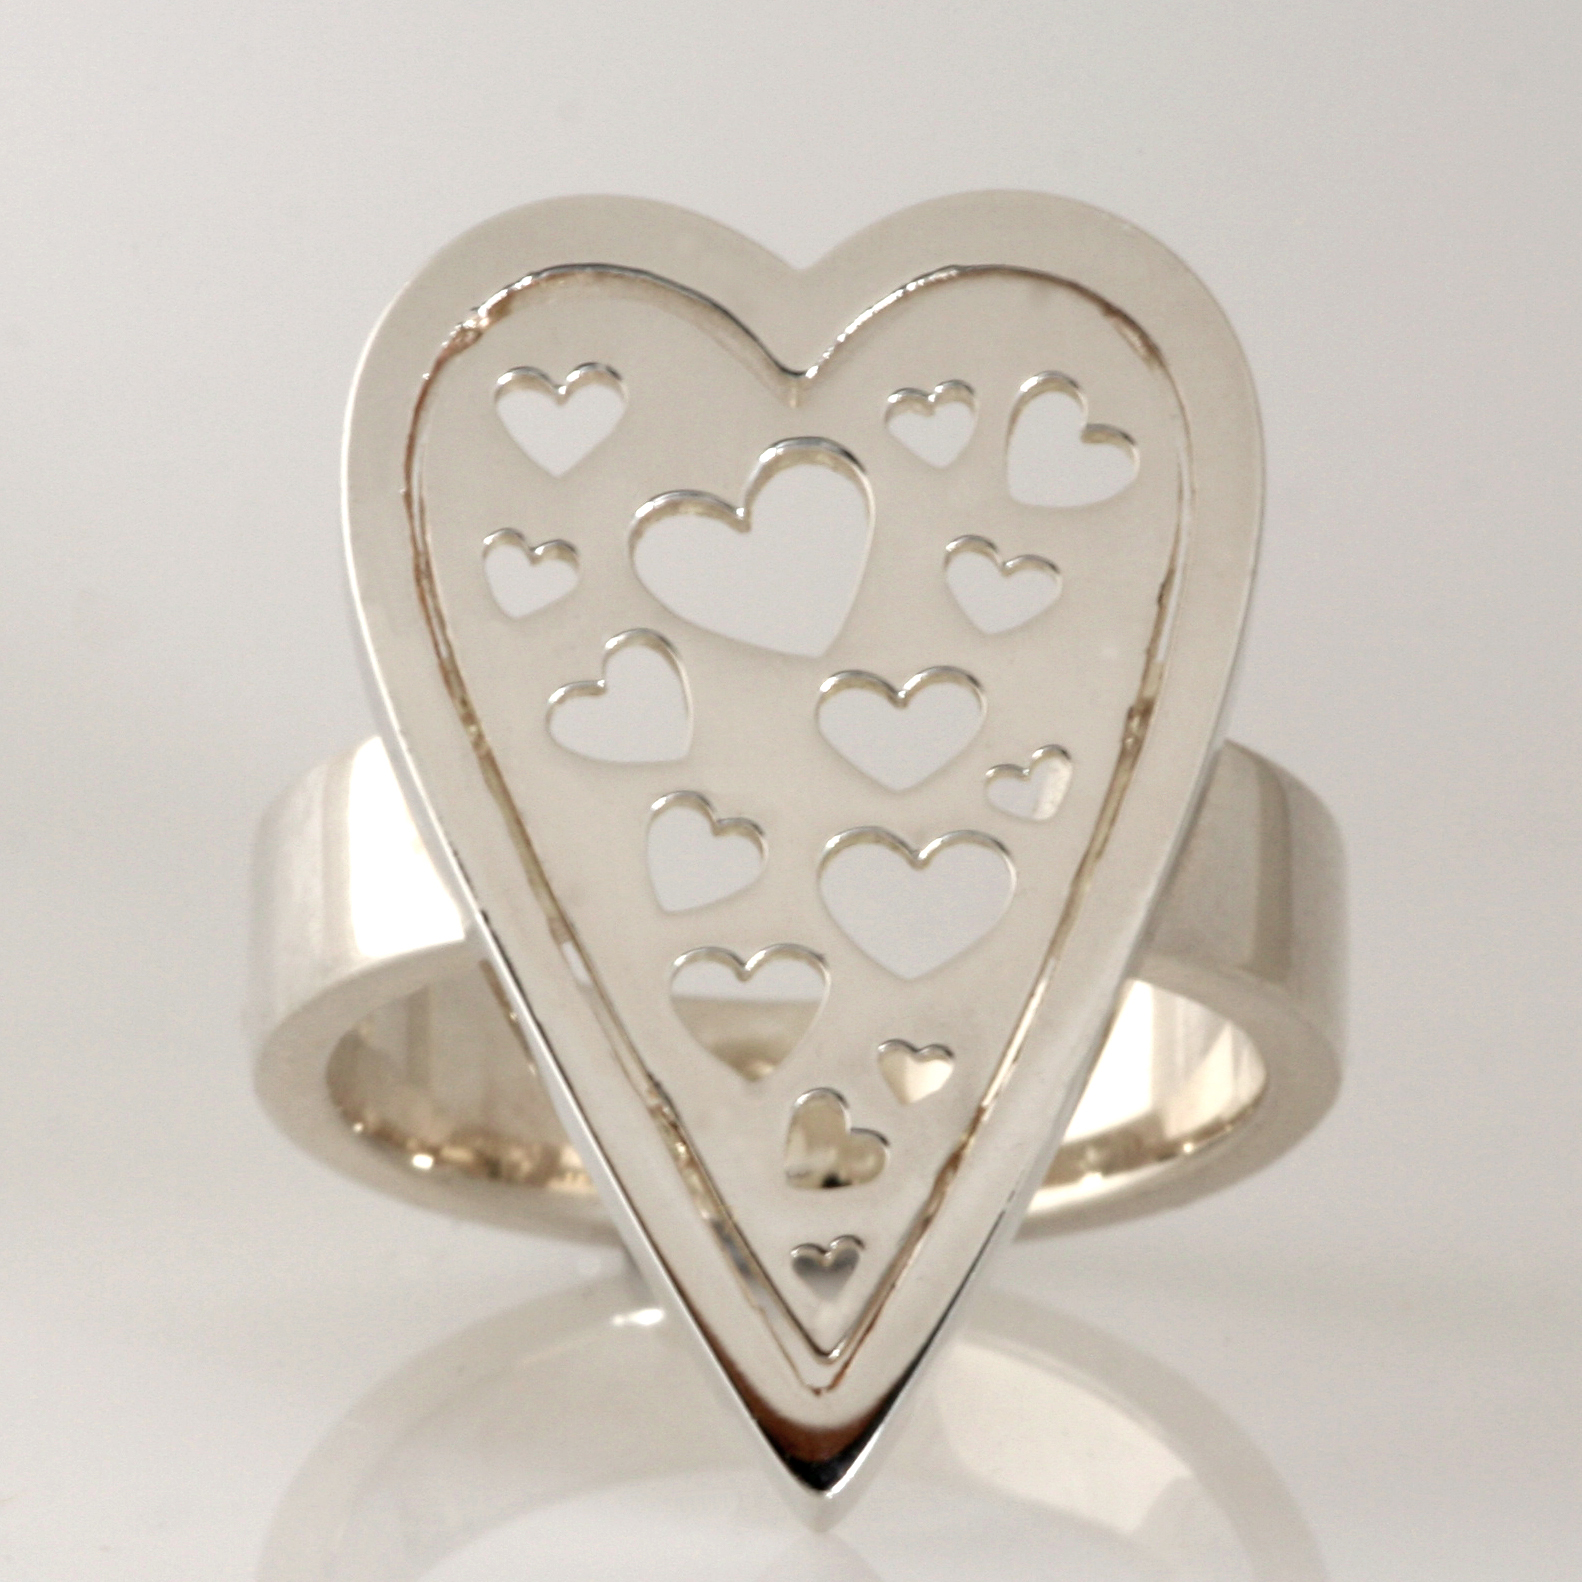 R102 sterling silver heart shape ring with heart shapes cut out. $160